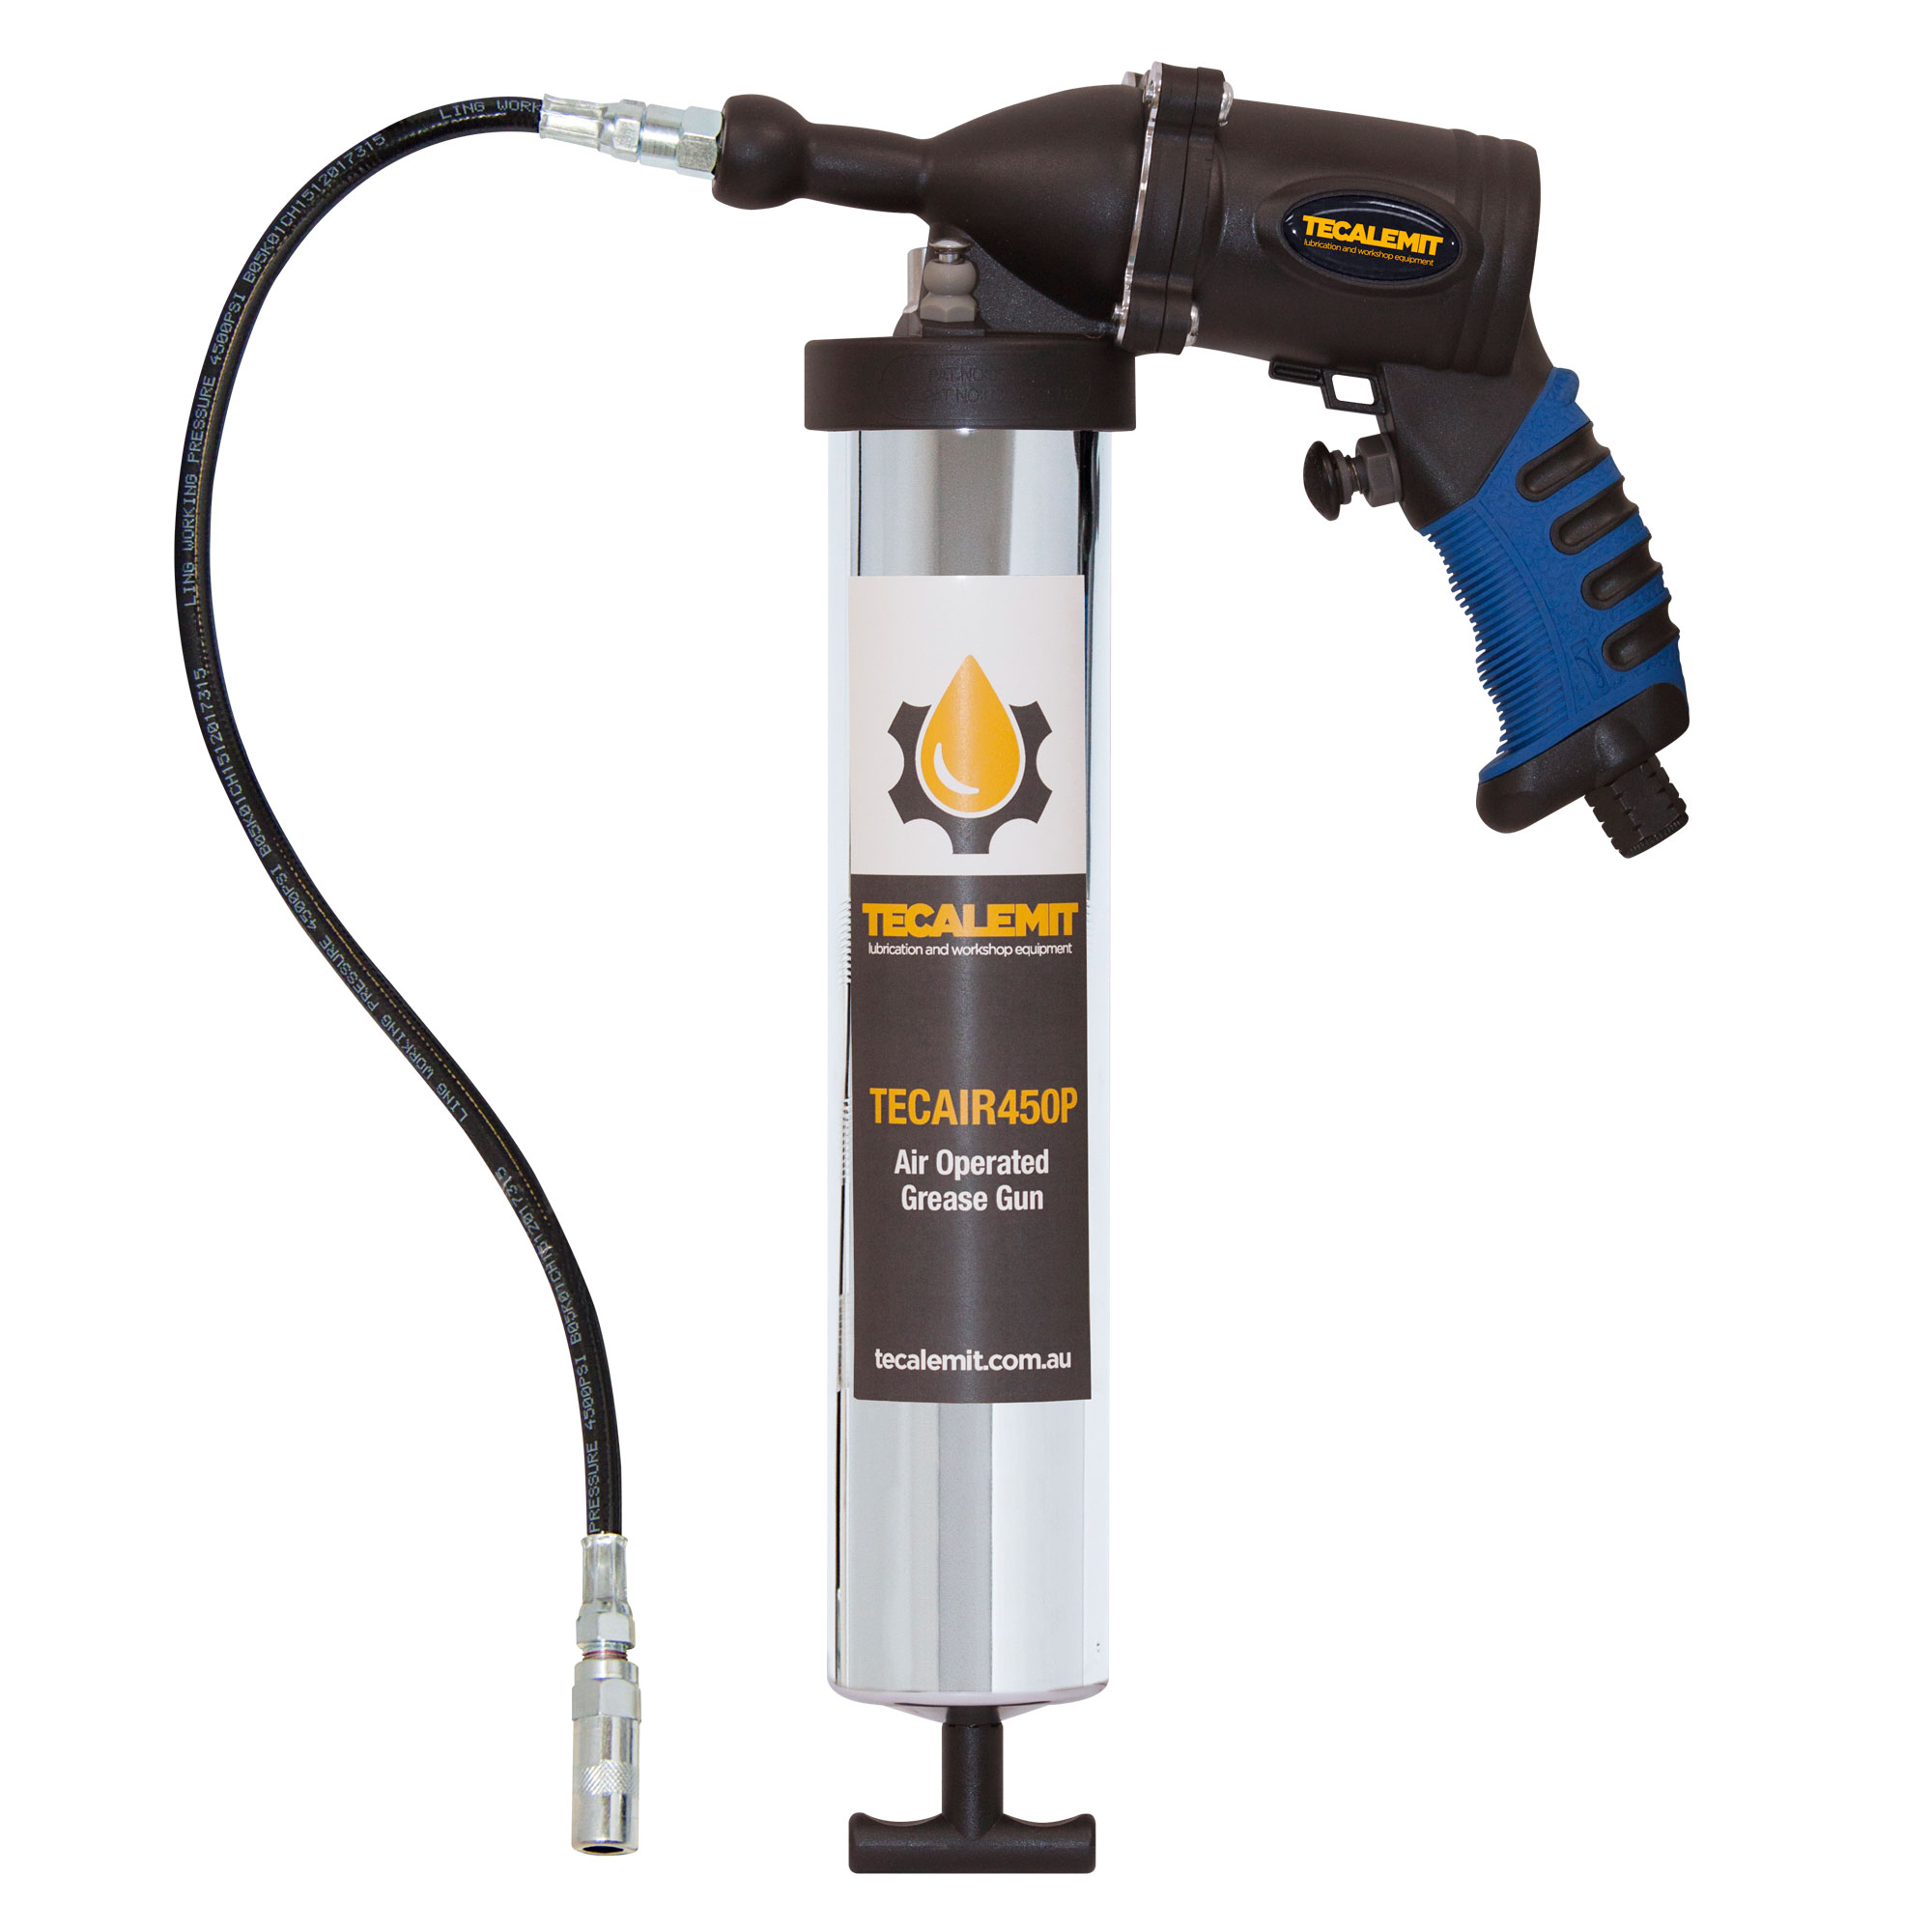 TECAIR450P - Air Operated Grease Gun